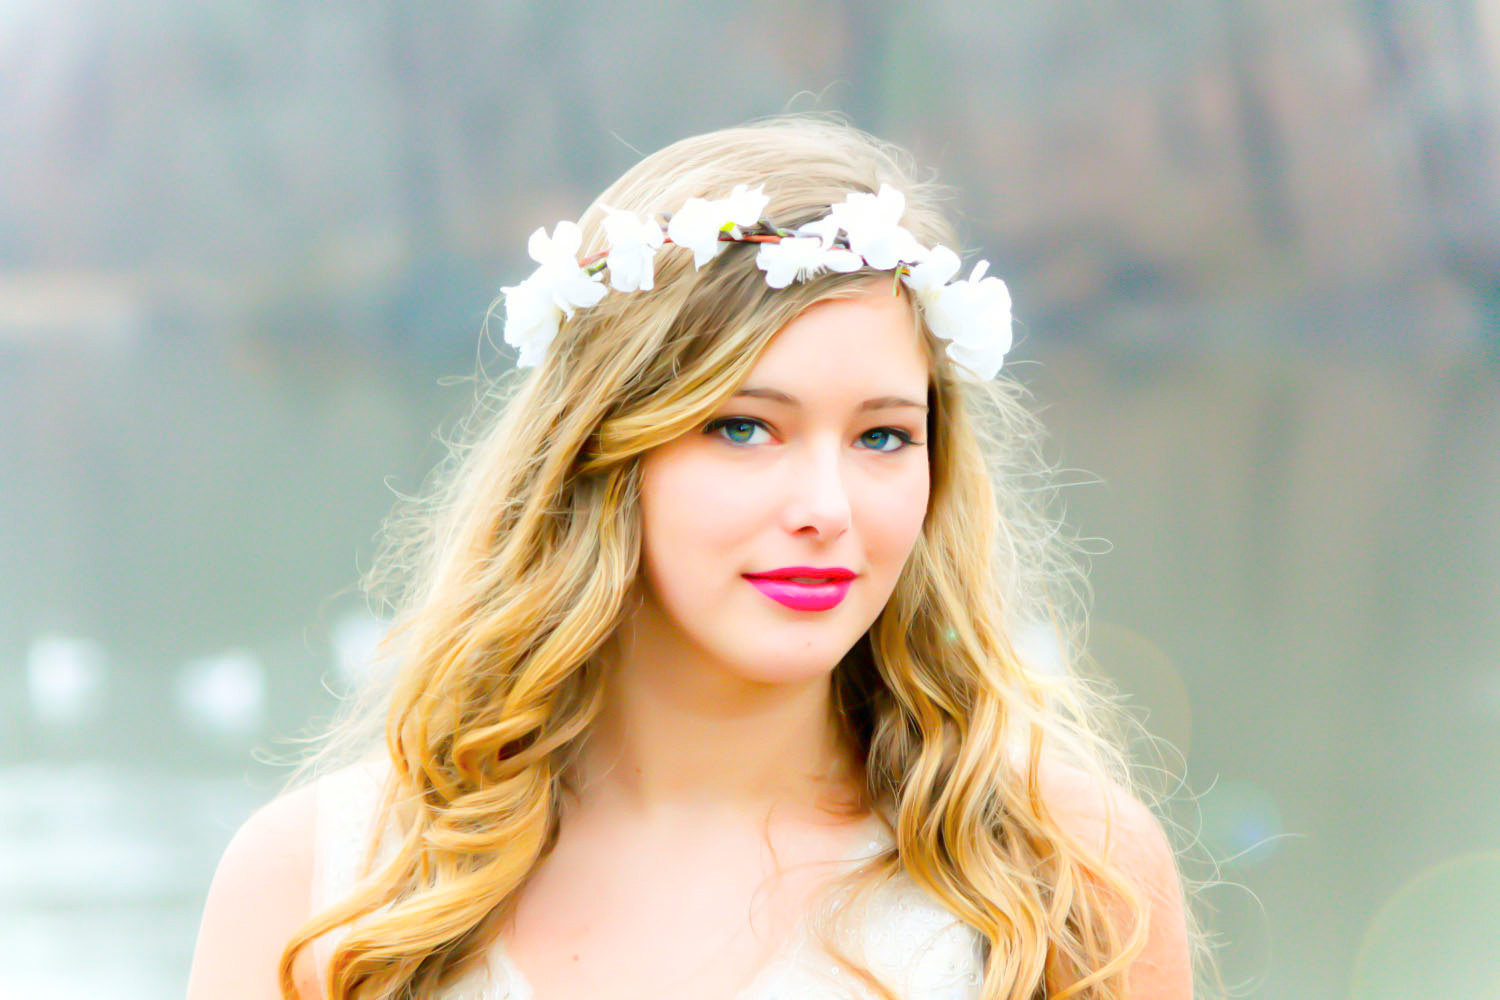 Bridal Flower Crown Flower Crowns Know Your Meme